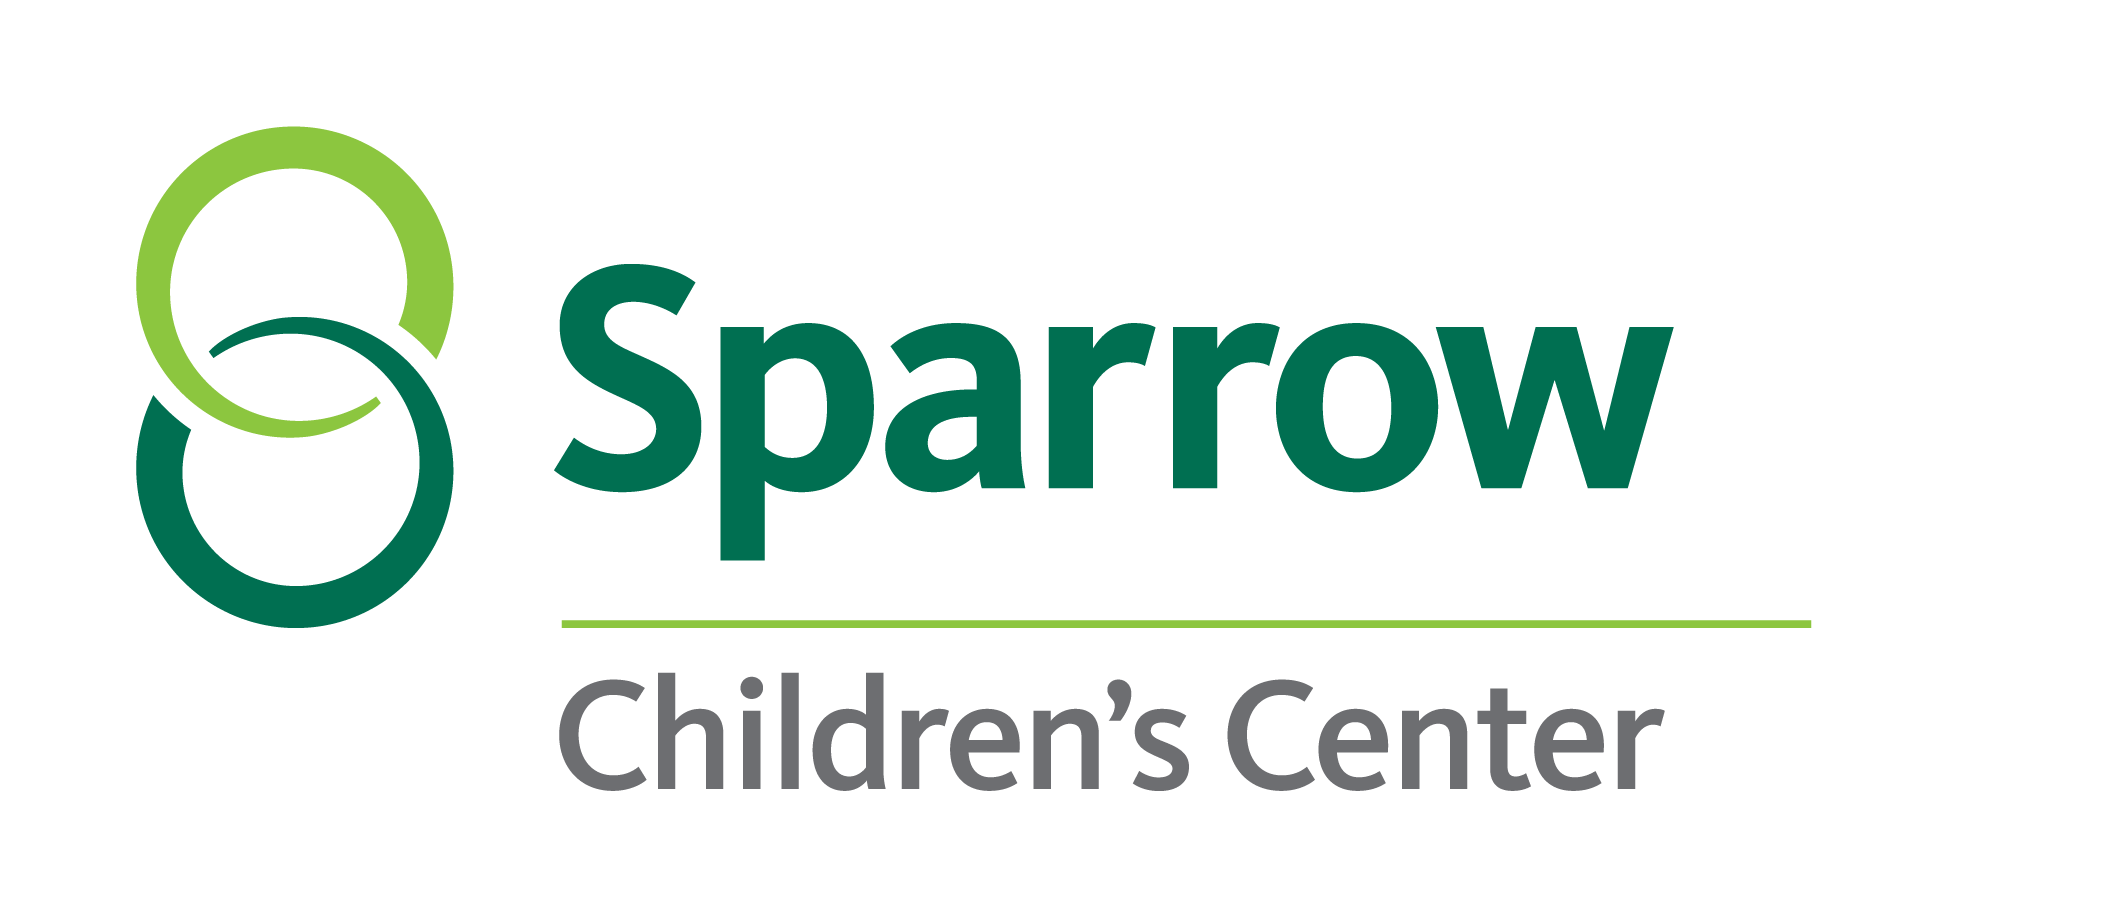 Sparrow Children's Hospital